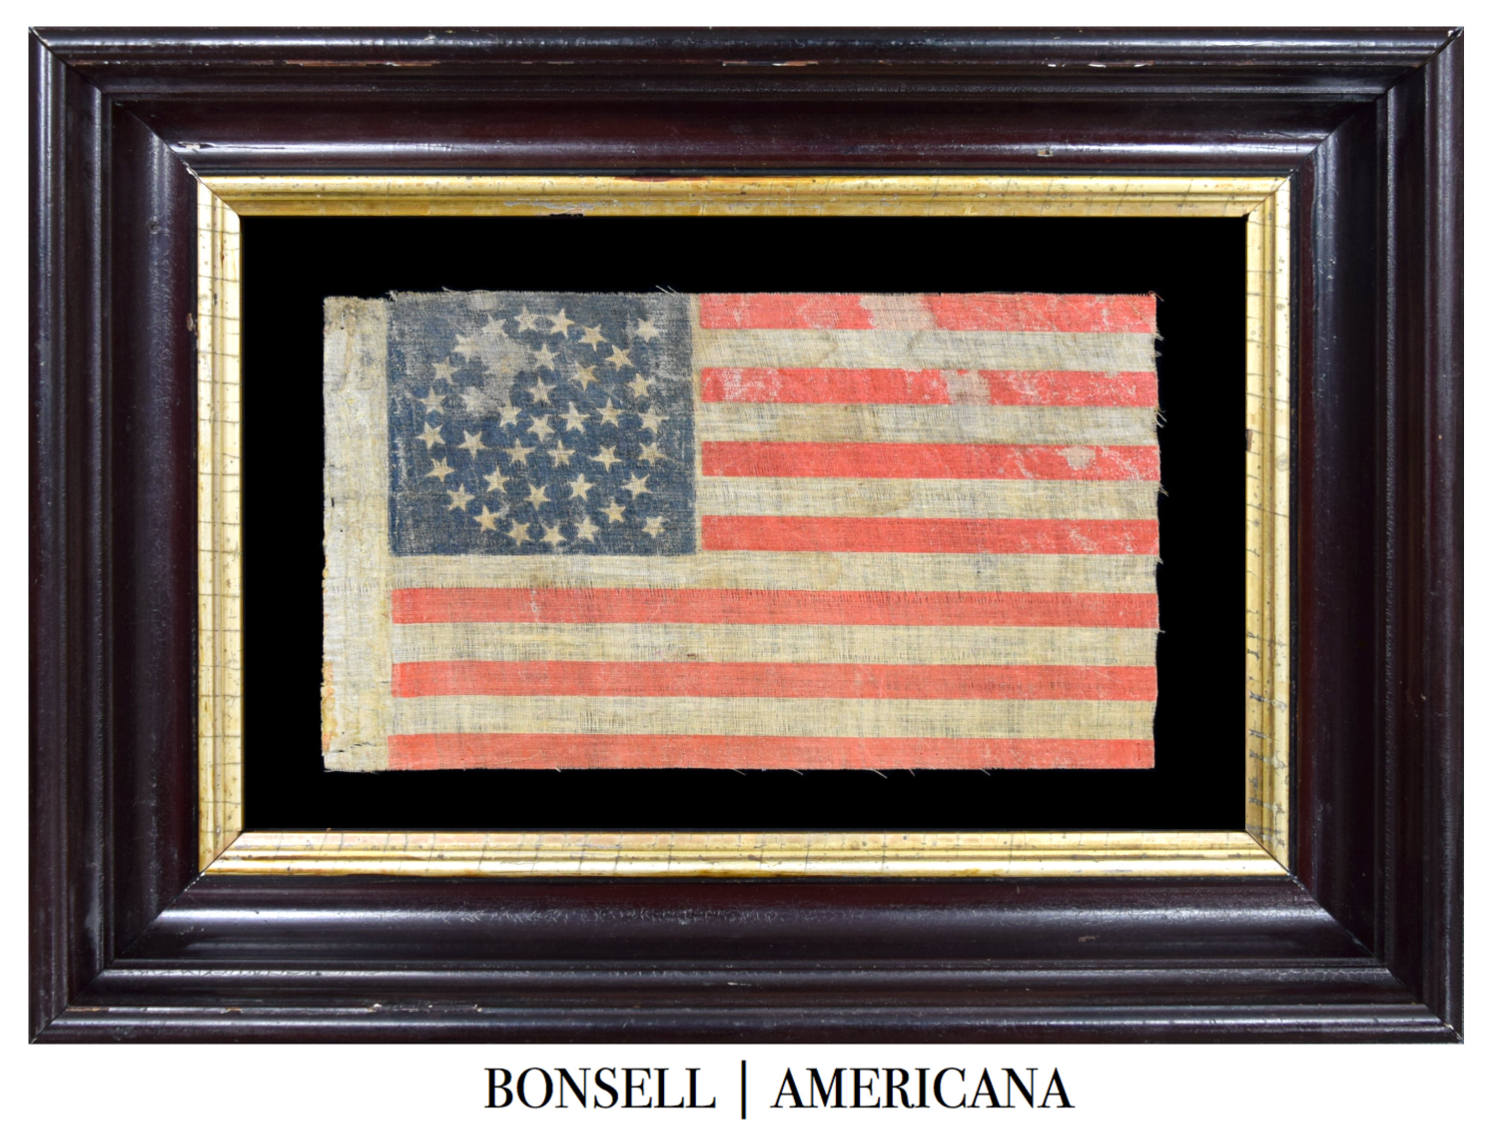 38 Star Antique Flag with a Medallion Star Pattern